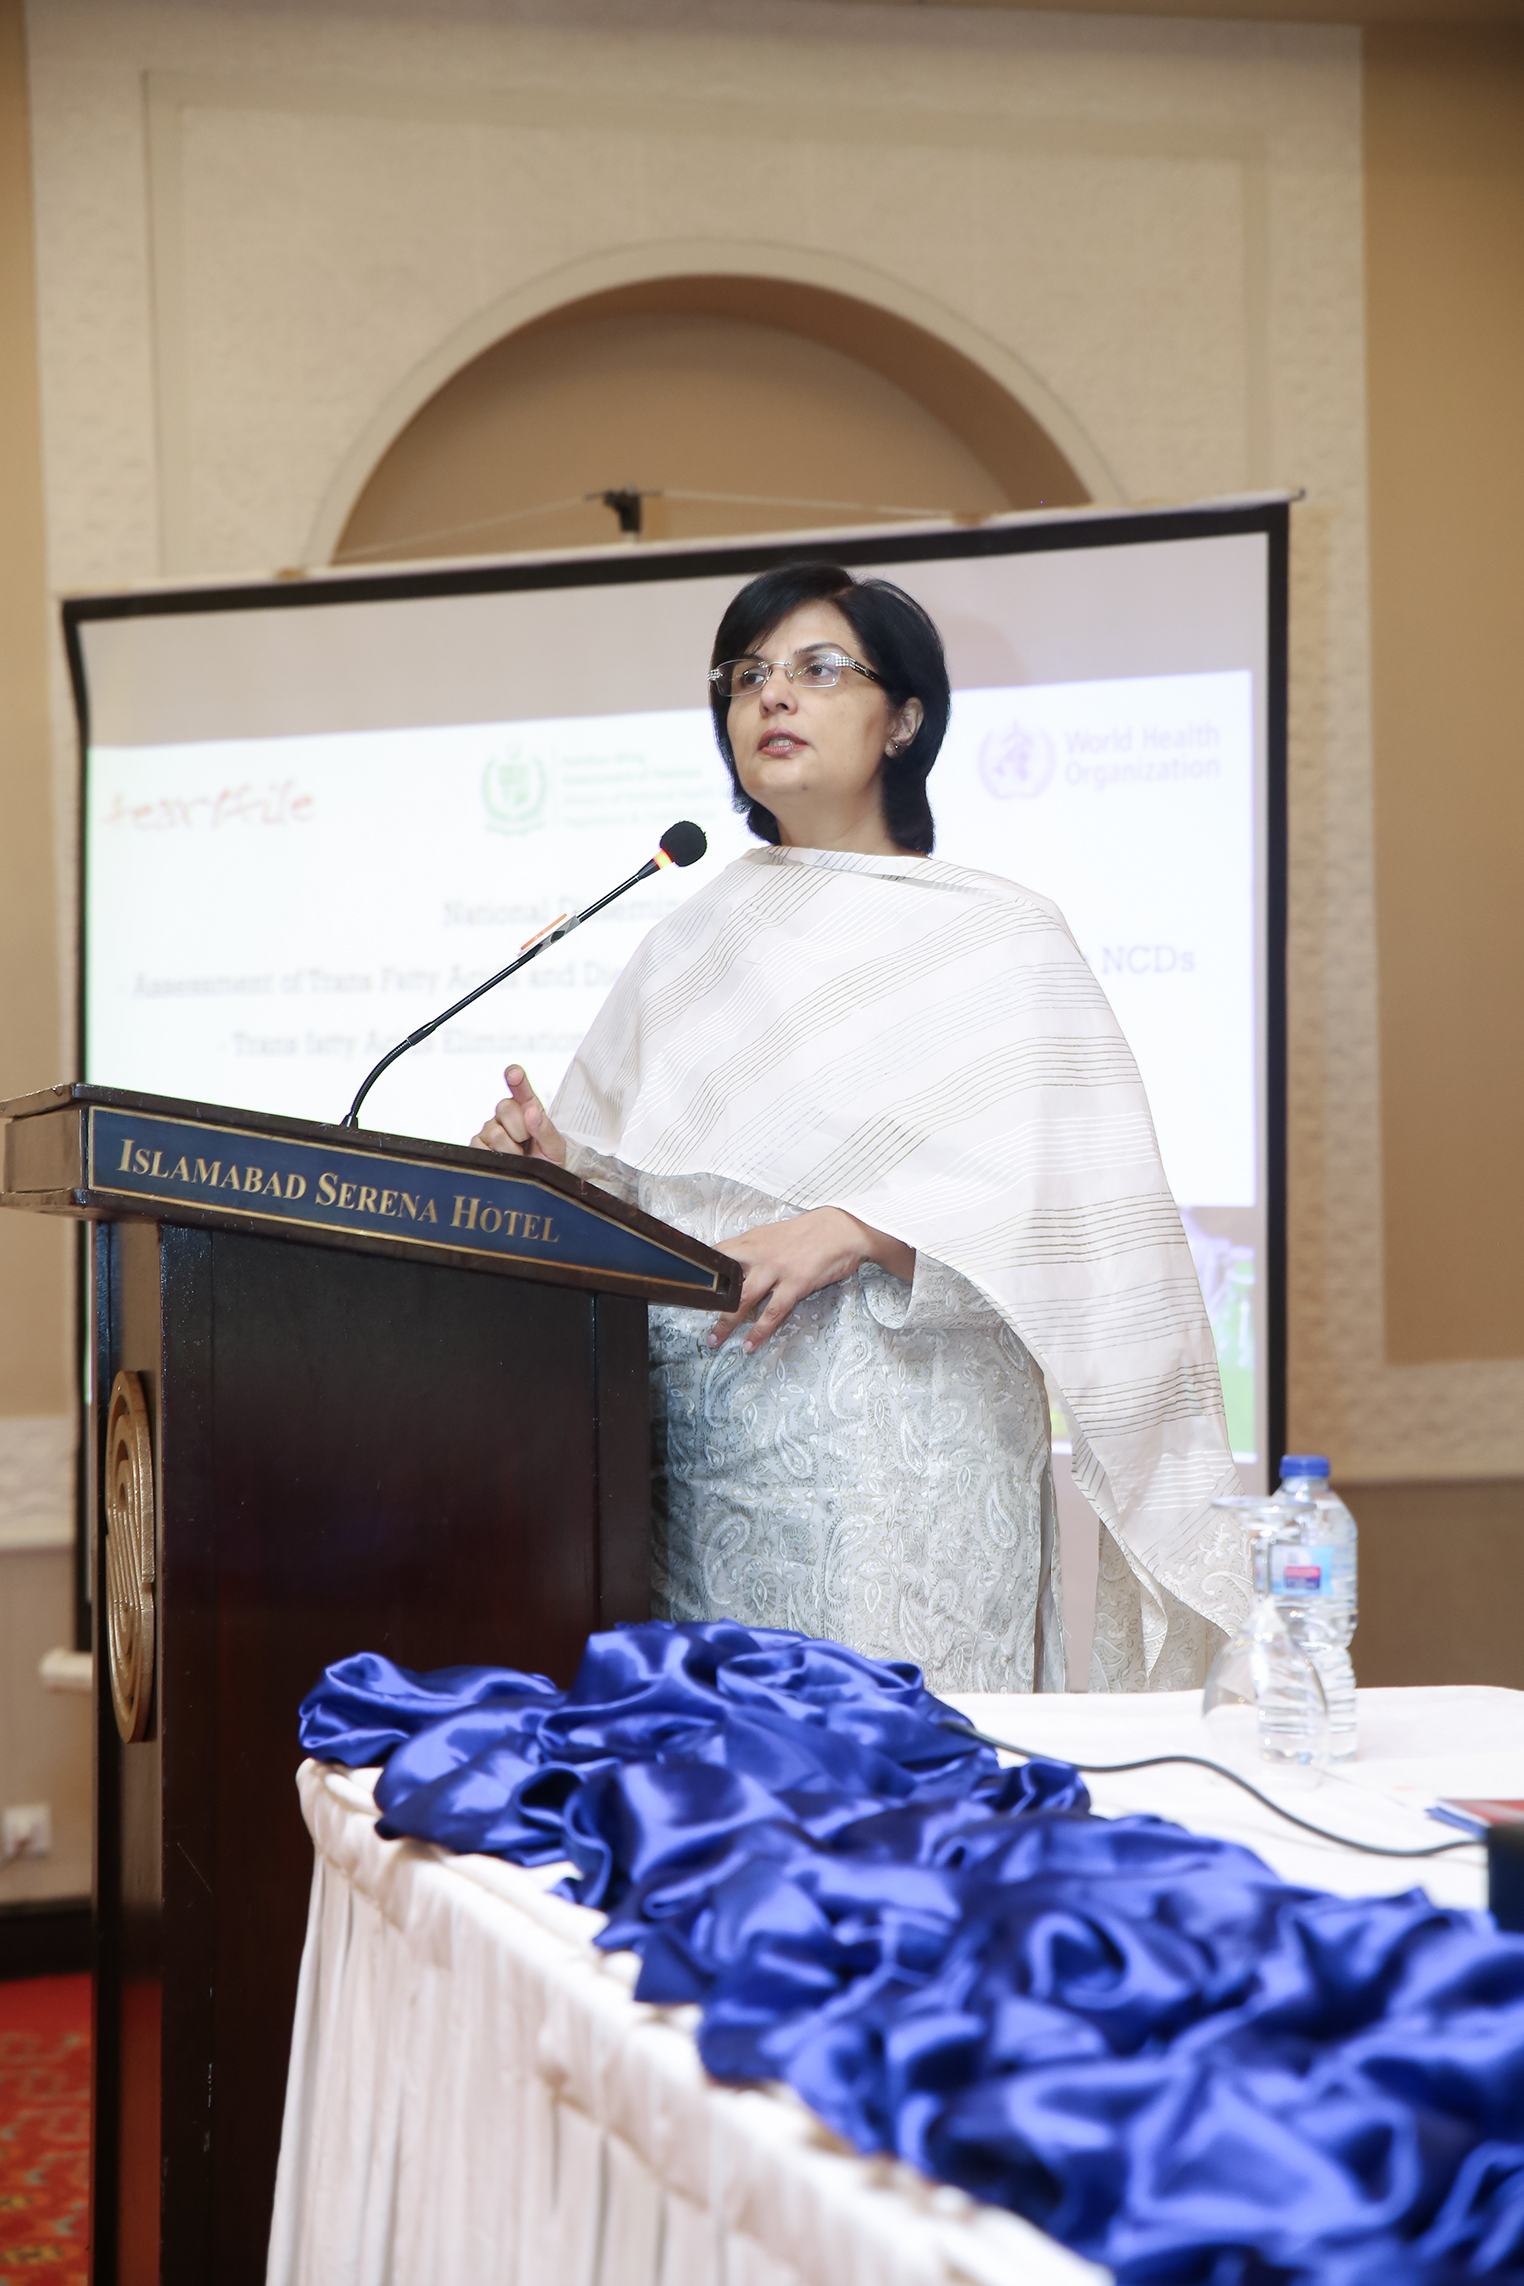 Heartfile co-hosted a dissemination event with WHO's Pakistan office and the Nutrition Wing of the Ministry of National Health Services Regulation and Coordination (MoNHSRC) in Islamabad on 11 July